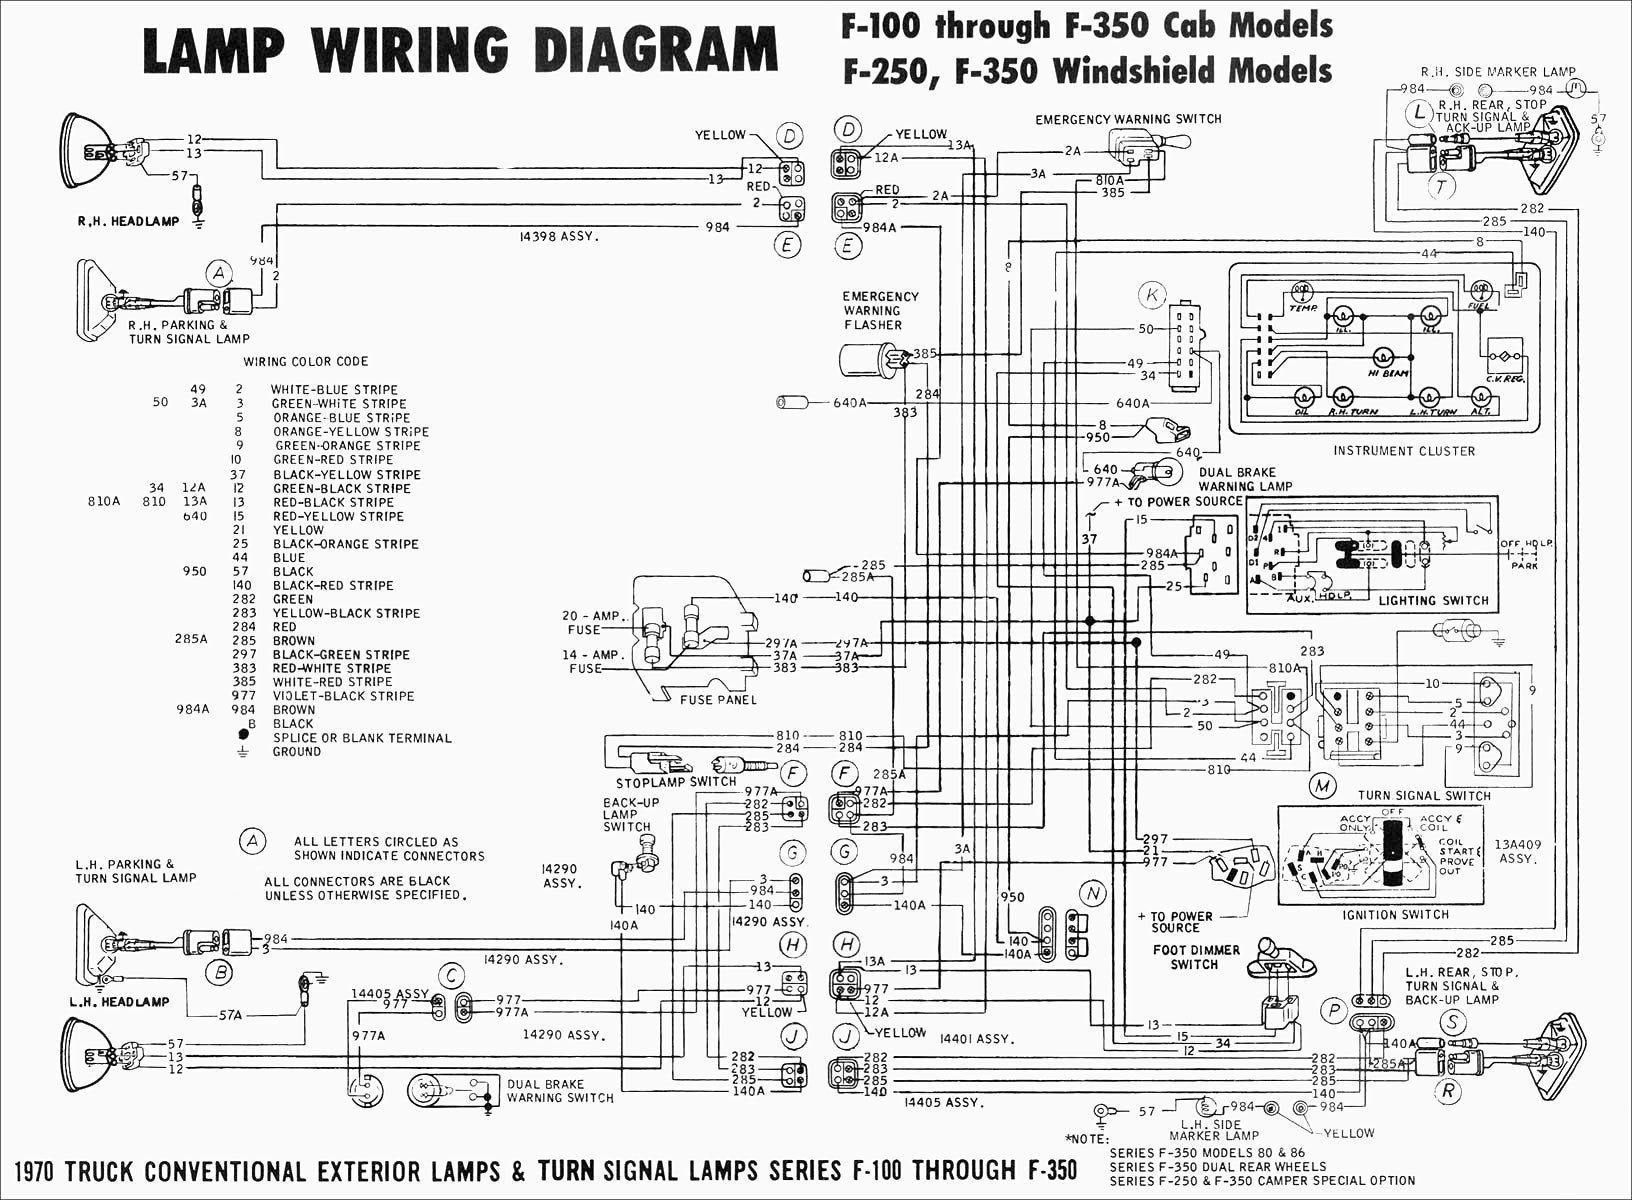 1997 Jeep Wrangler Radio Wiring Diagram from static-resources.imageservice.cloud